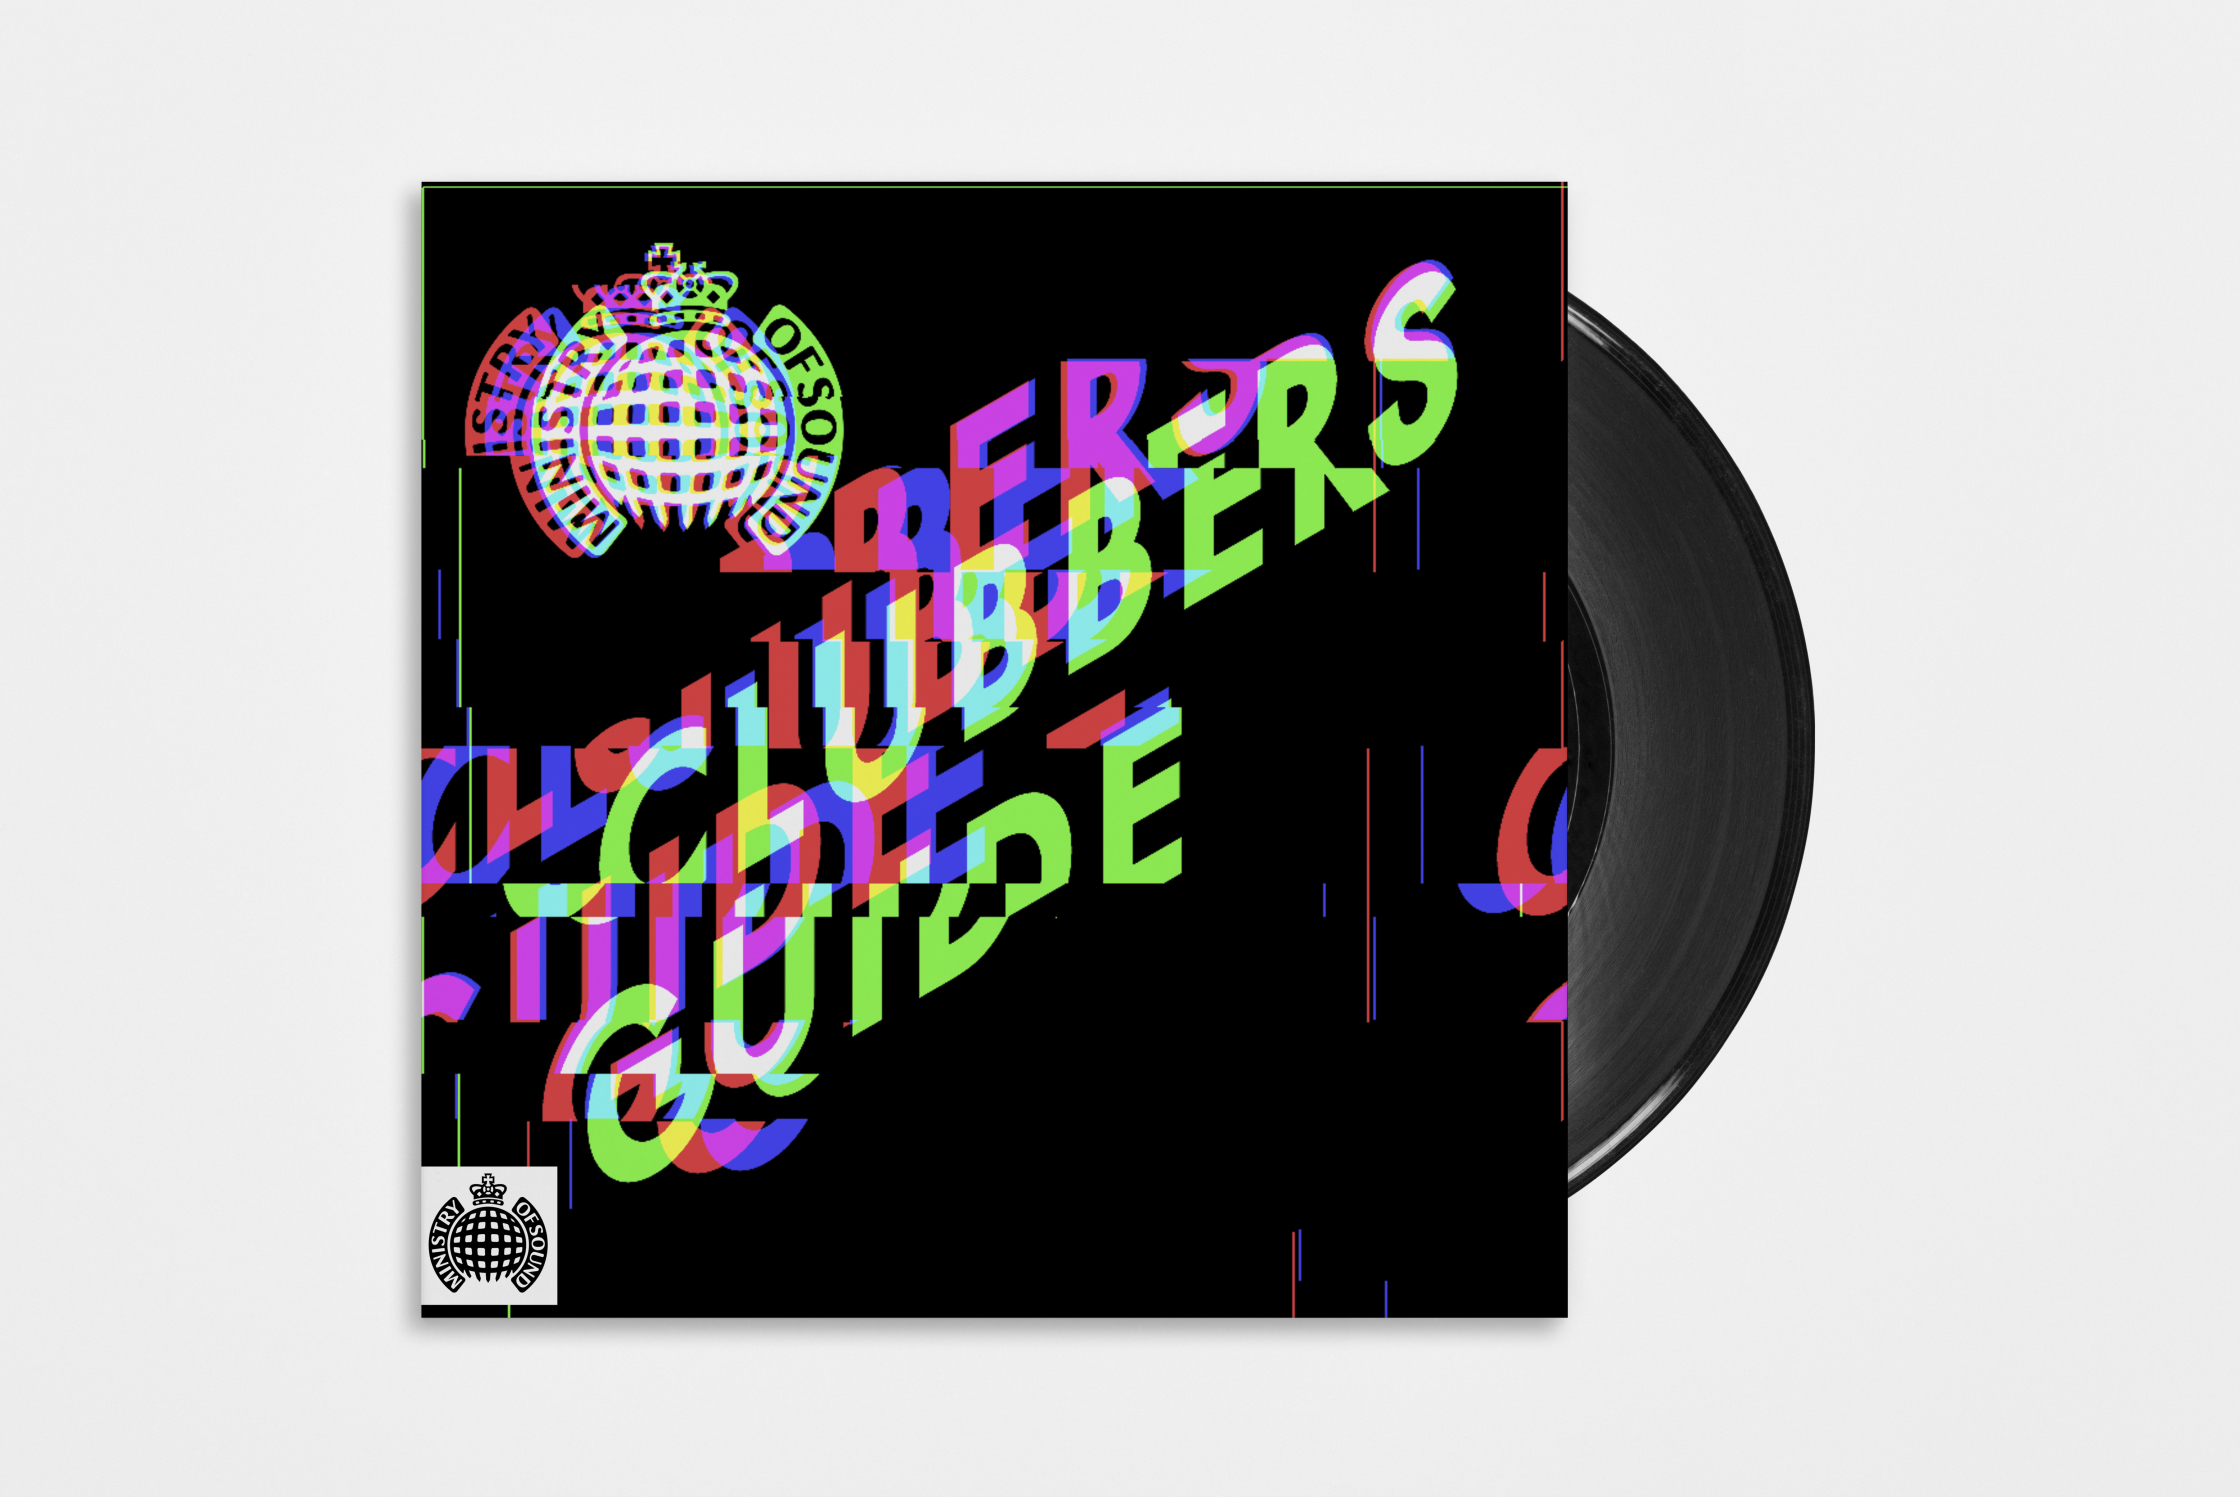 MinistryOfSound-ClubbersGuide04.jpg